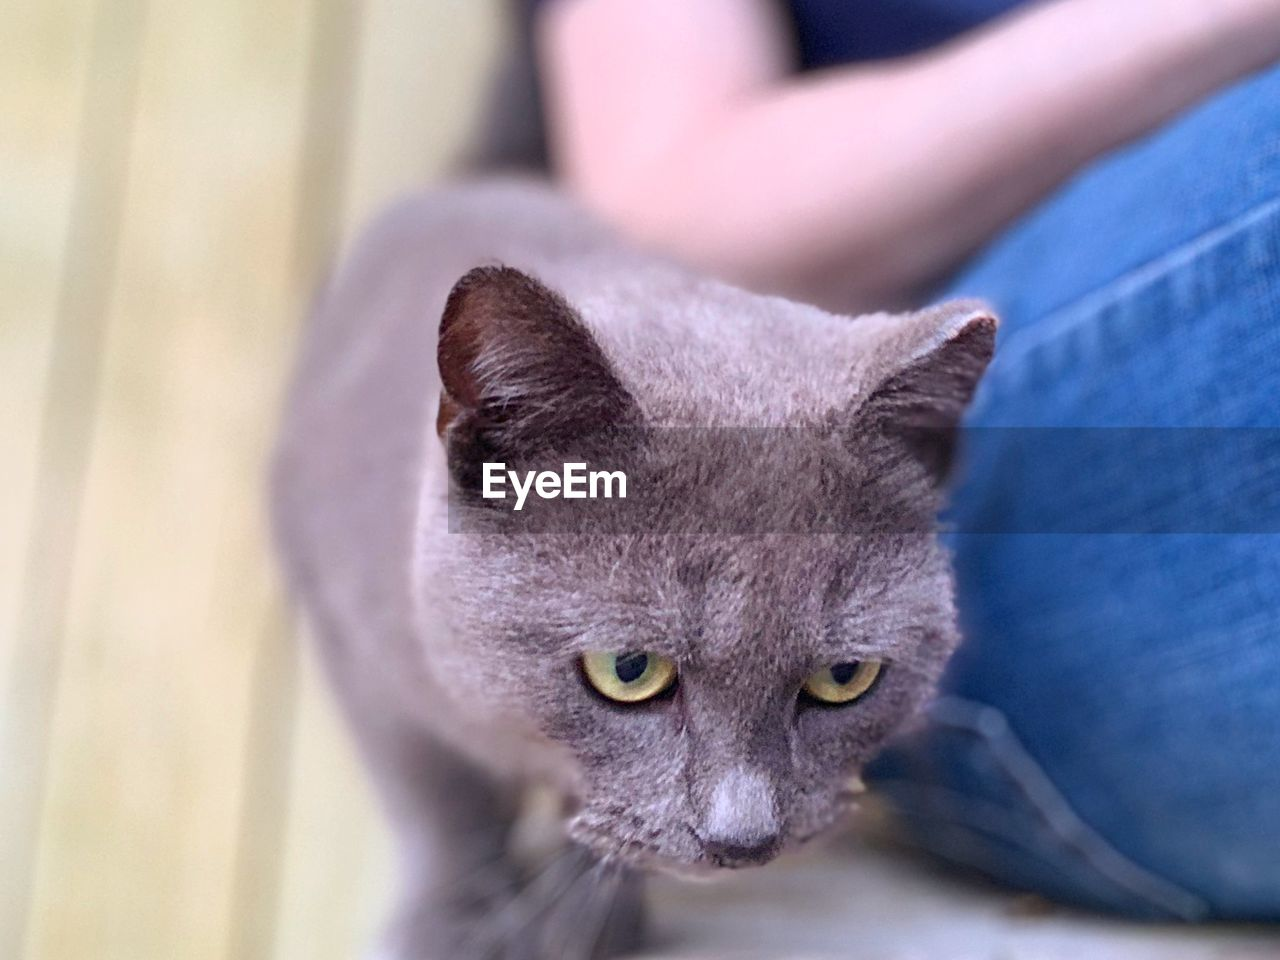 mammal, one animal, domestic animals, feline, pets, domestic, domestic cat, cat, vertebrate, close-up, focus on foreground, people, portrait, indoors, looking at camera, sitting, looking, whisker, animal eye